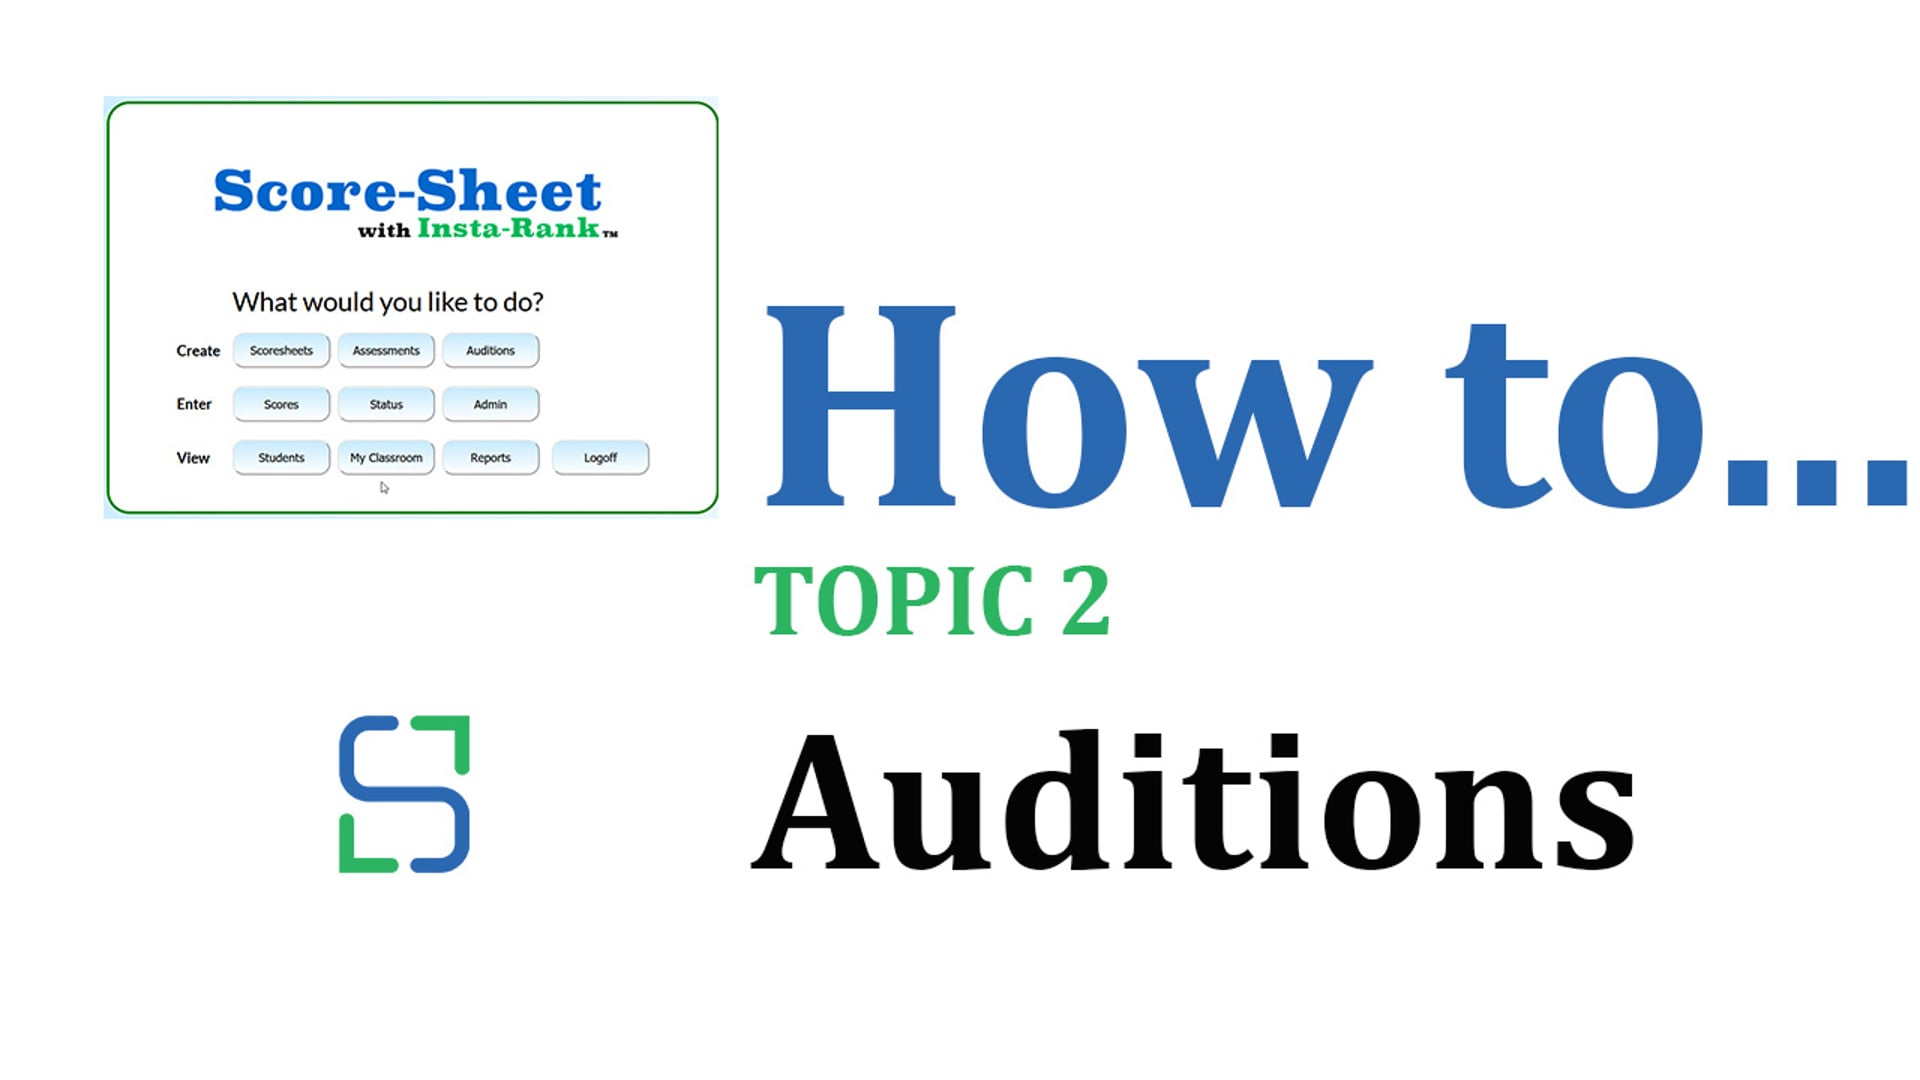 7 - AUDITIONS